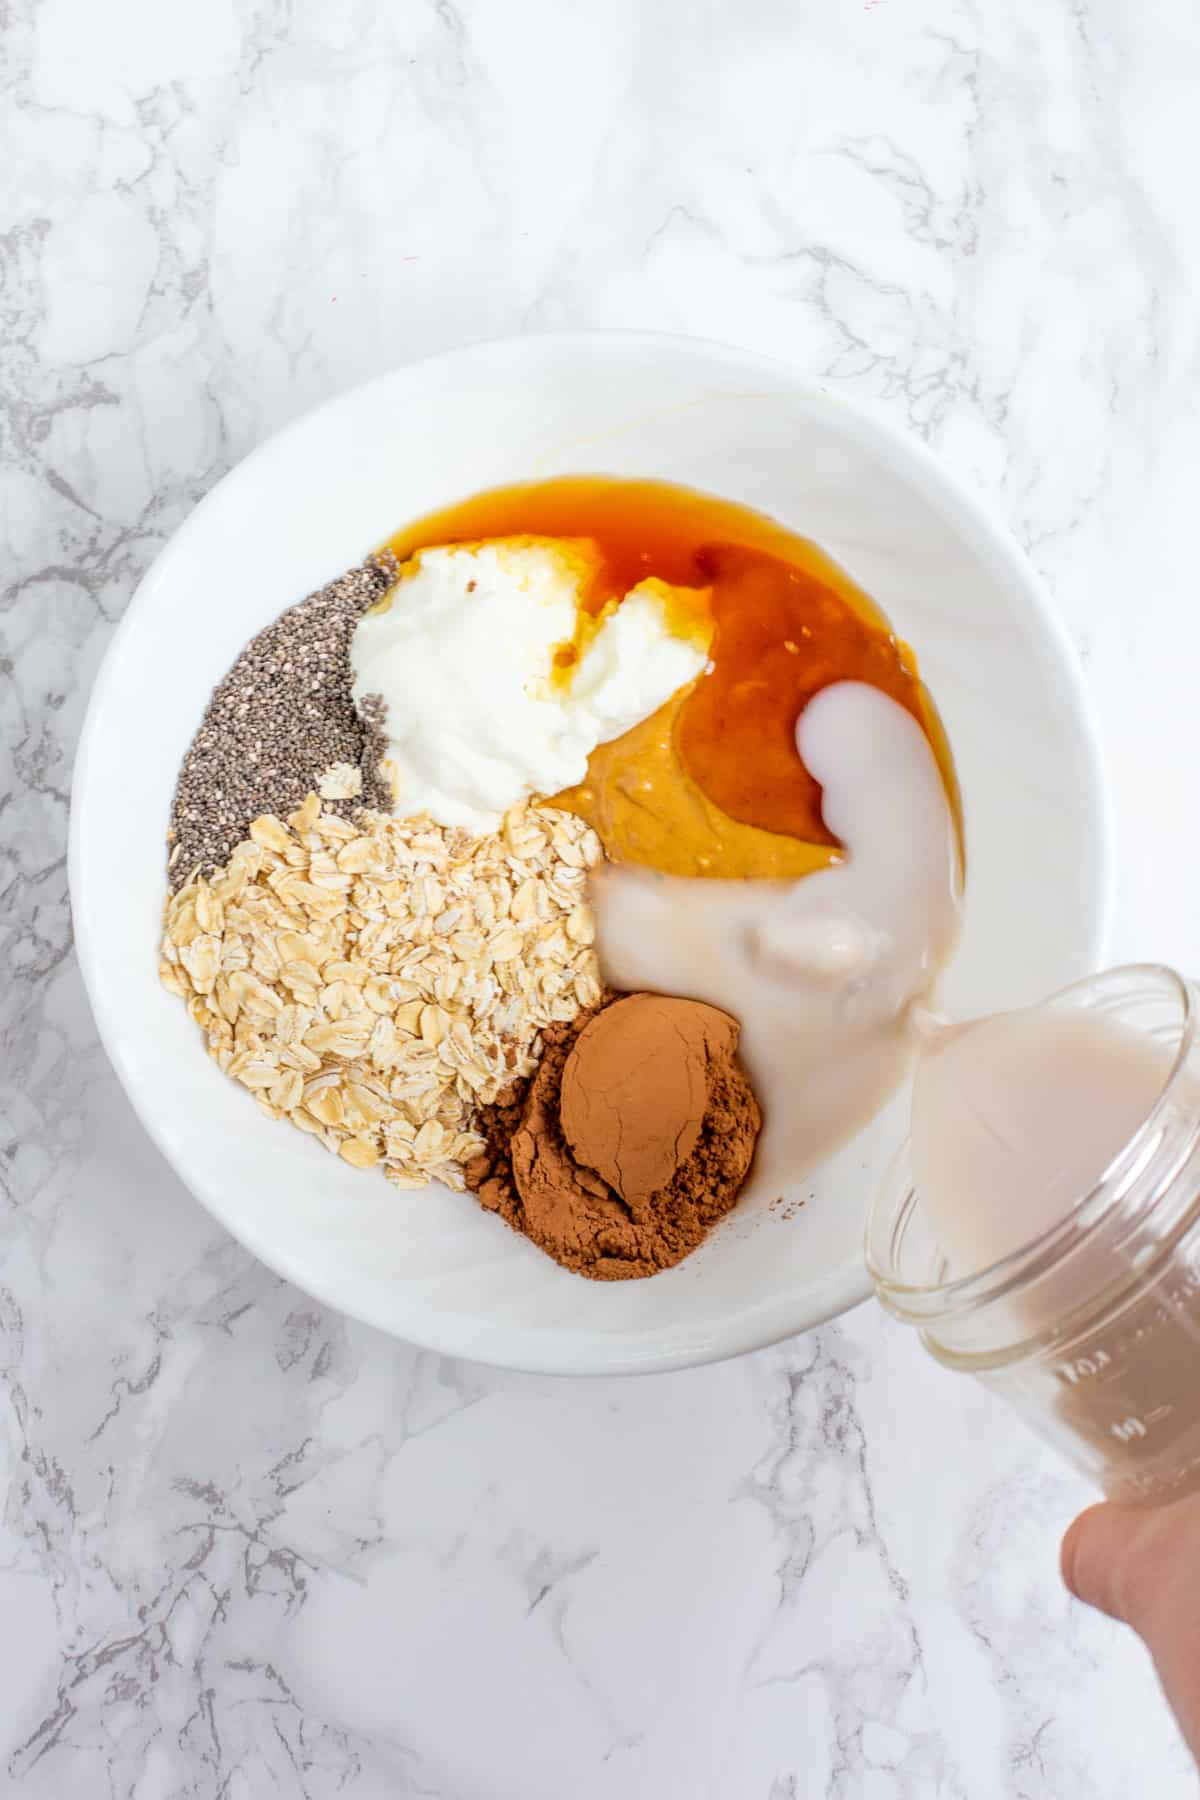 Ingredients in a white bowl - rolled oats, cocoa powder, peanut butter, yogurt, chia seeds, and milk.